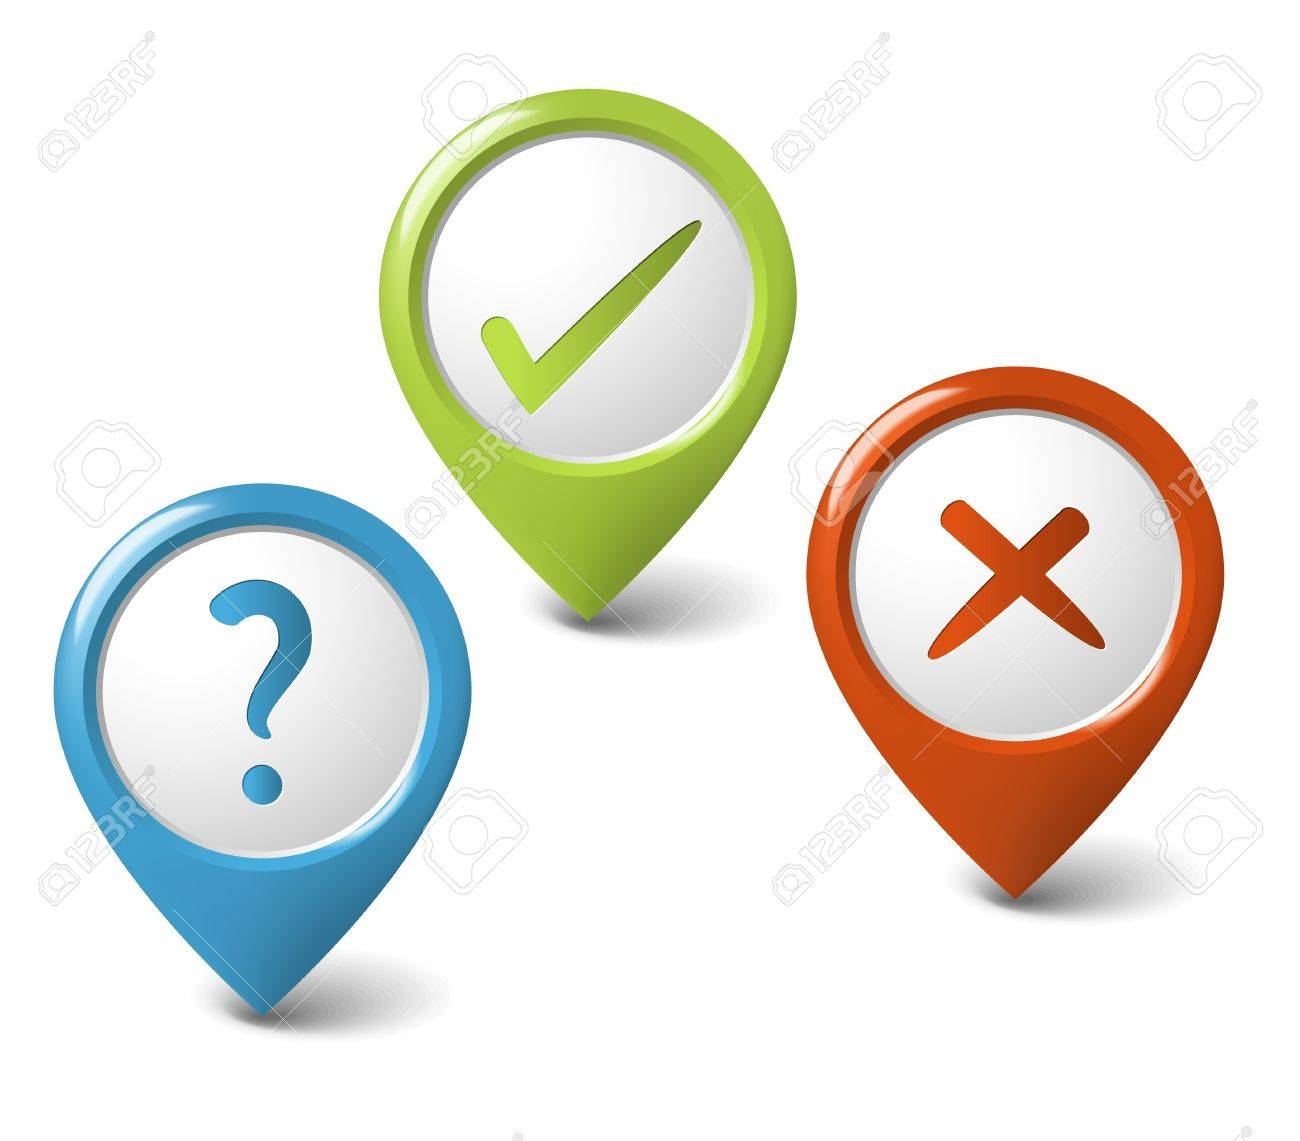 Set of round 3D pointers -question, cancel, ok Stock Vector - 9942158